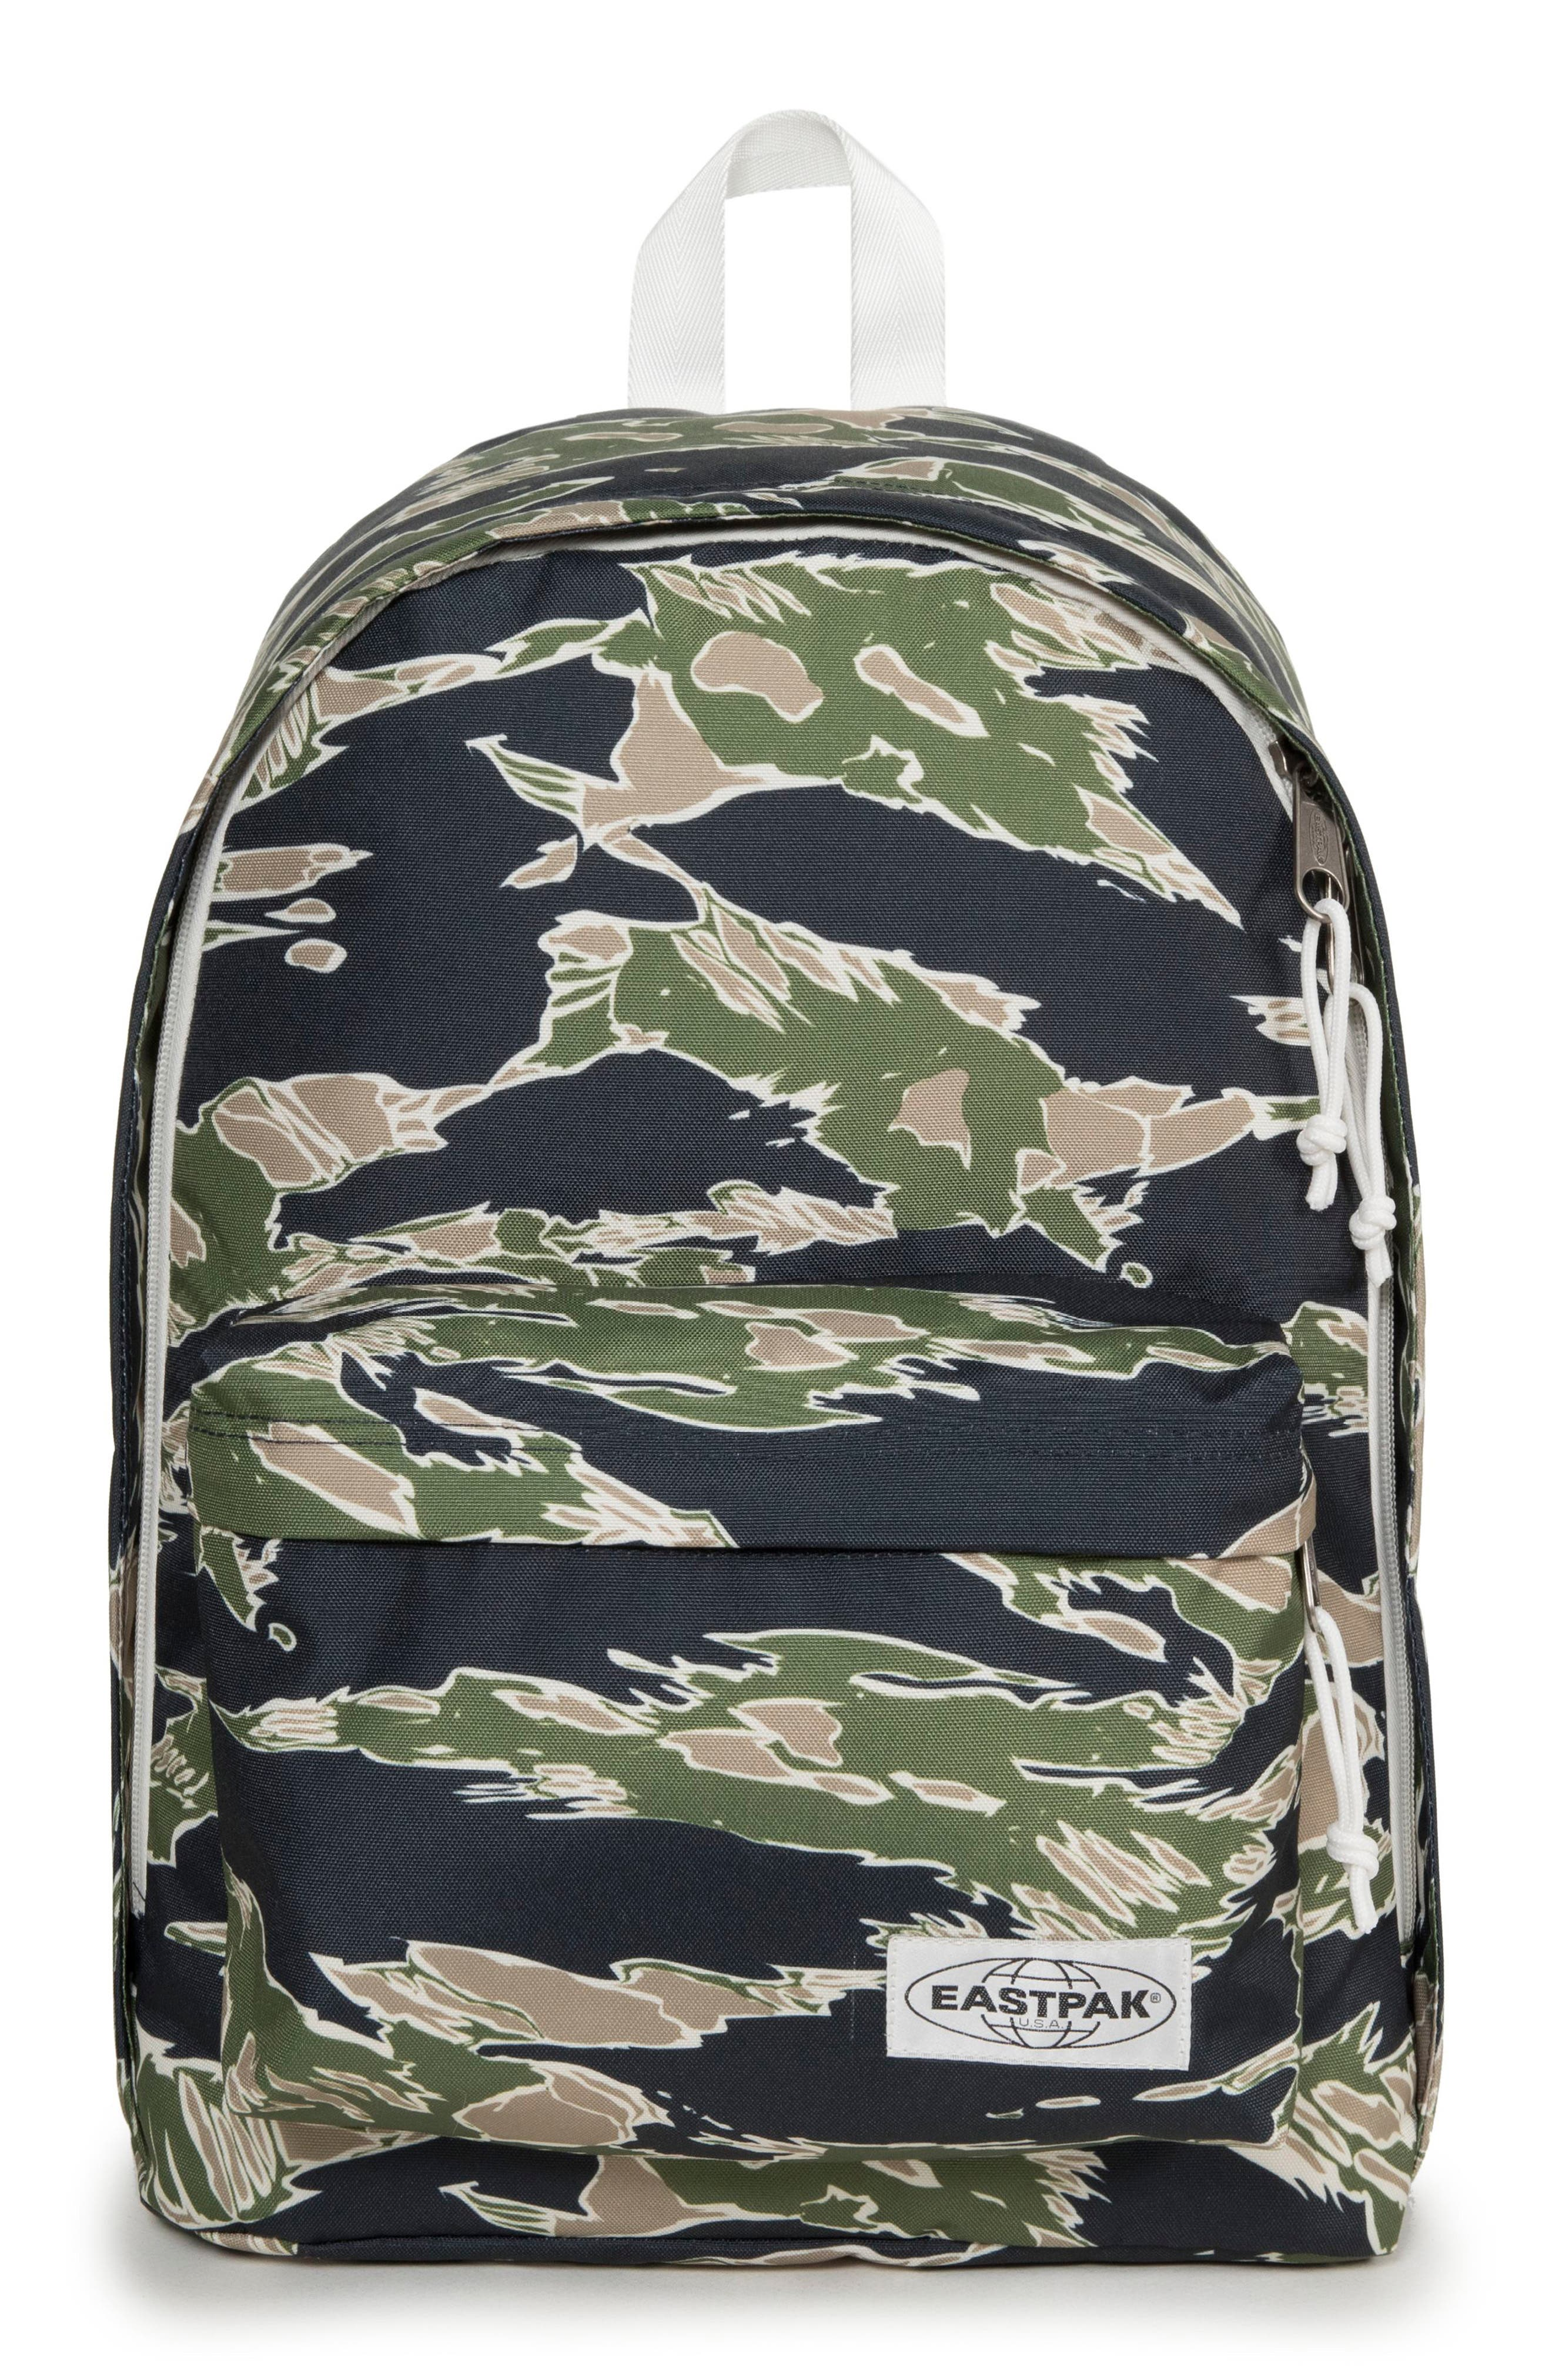 Eastpack Out Of Office Backpack - Green